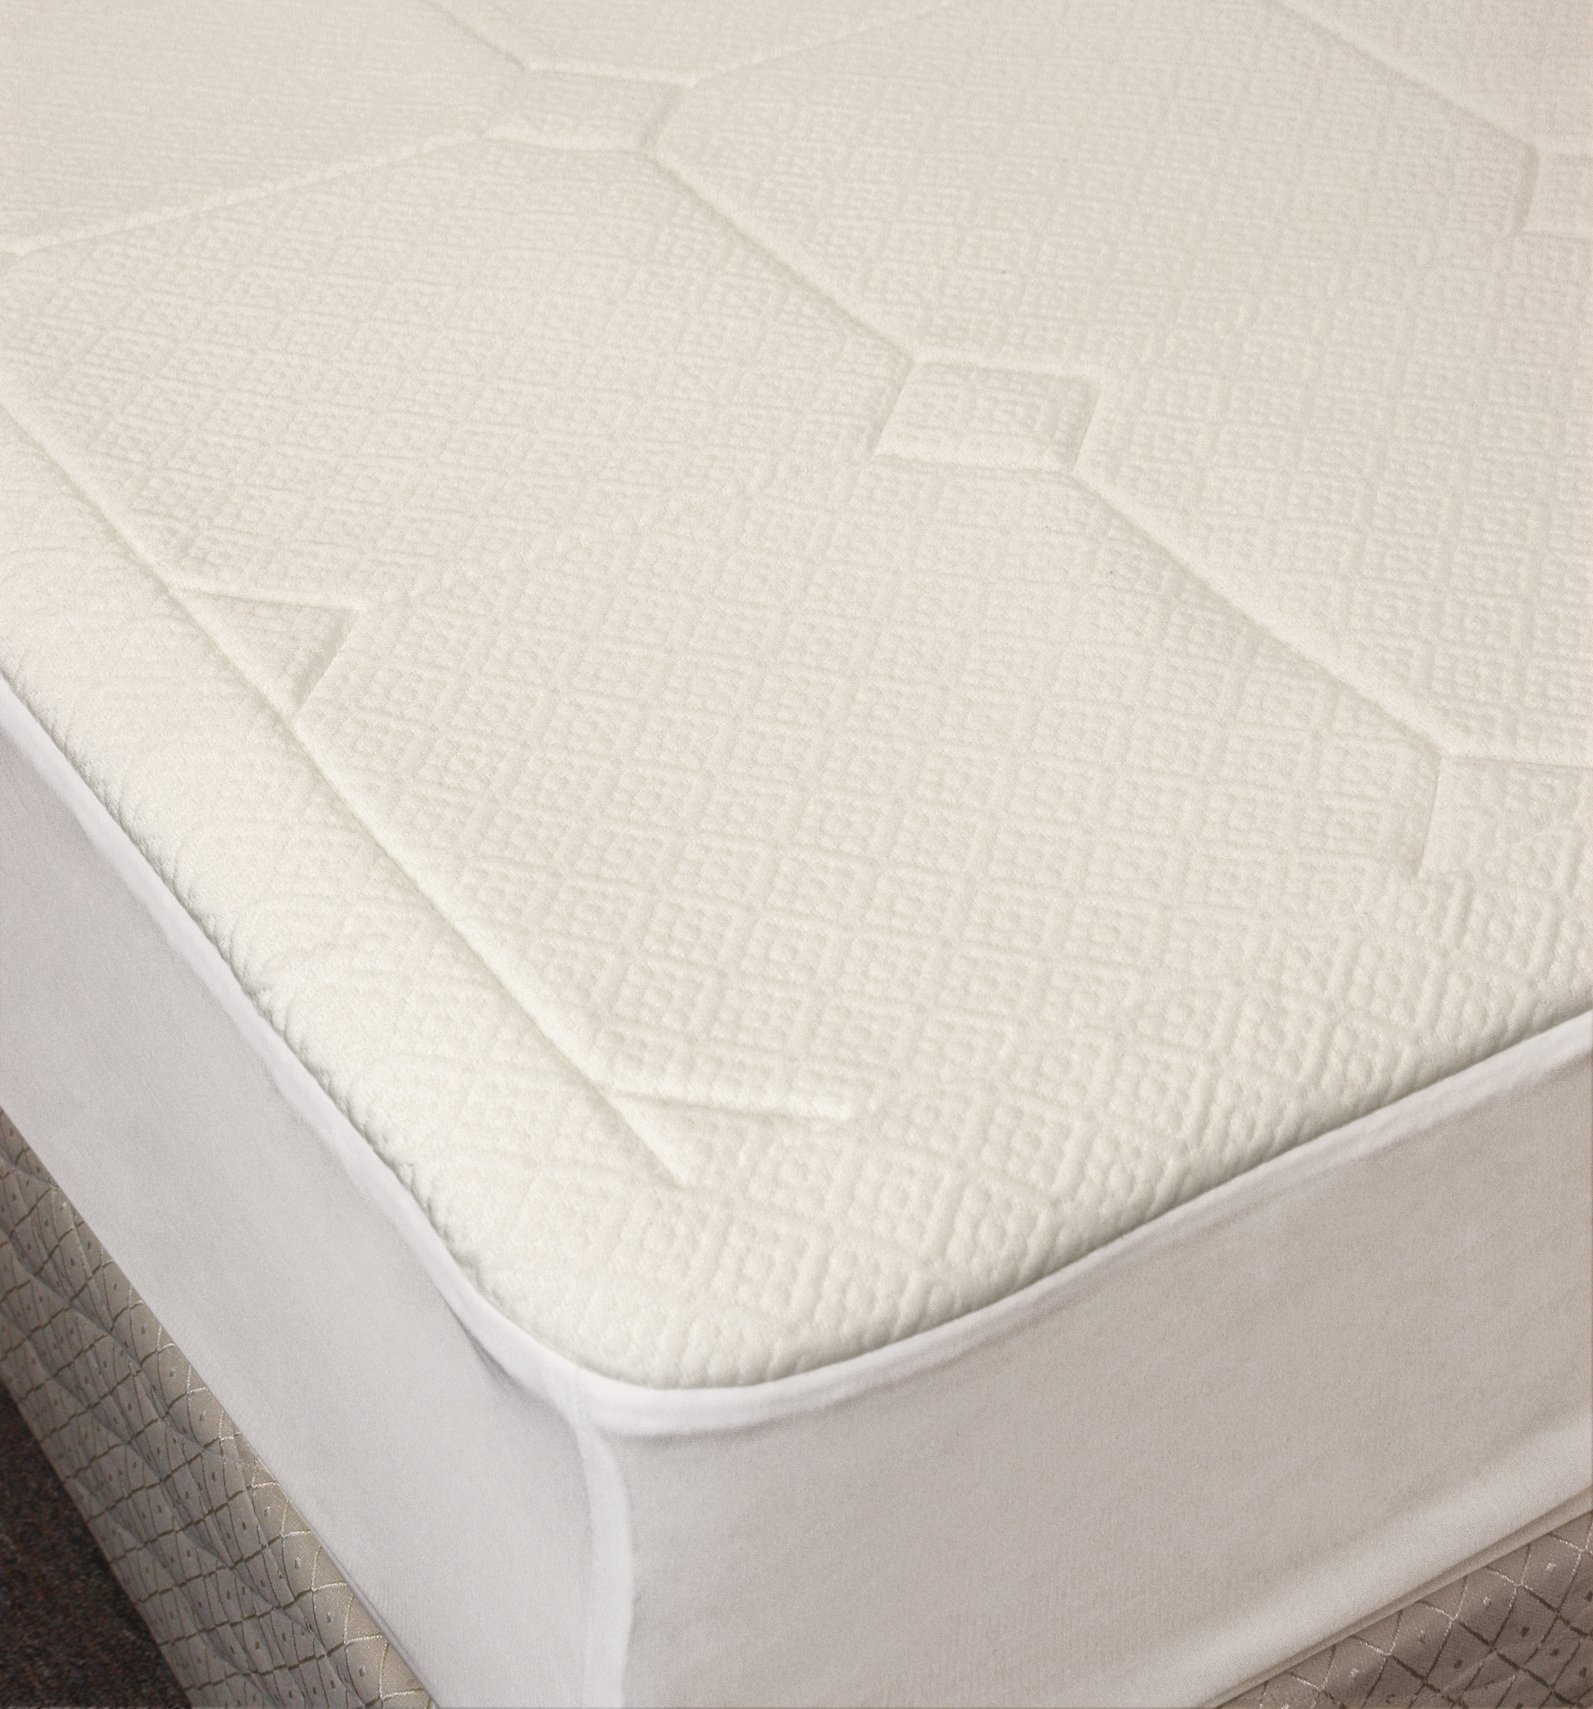 Rio Home Fashions 1/2-Inch Quilted Memory Foam, Dust Mite and Allergen Resistant Mattress Pad, Full